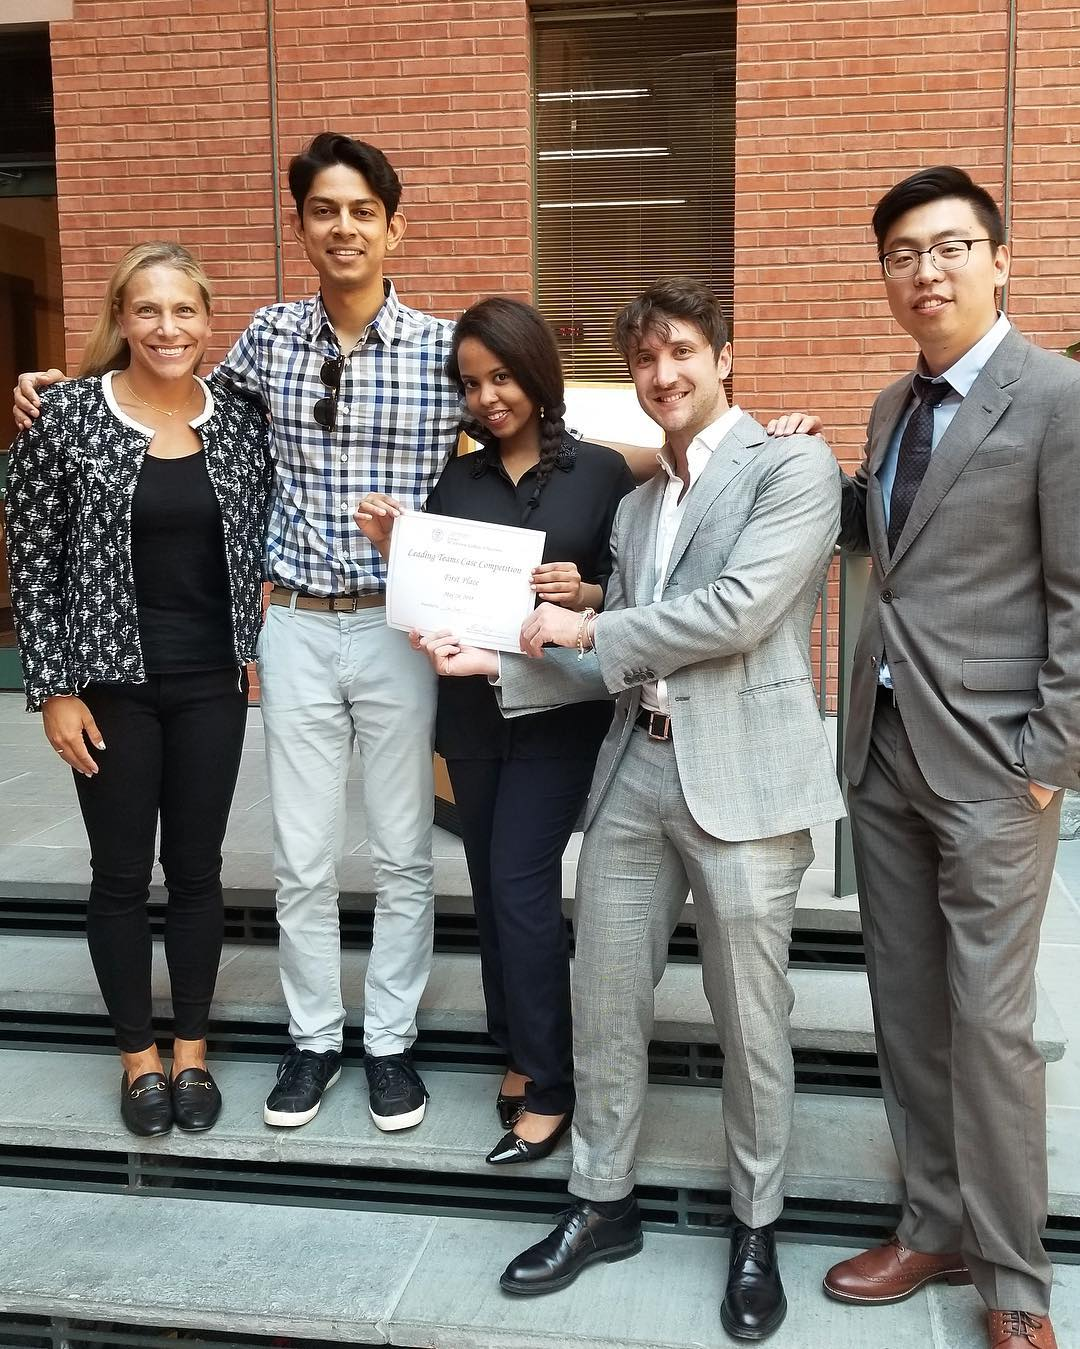 Five students pose with their certificate